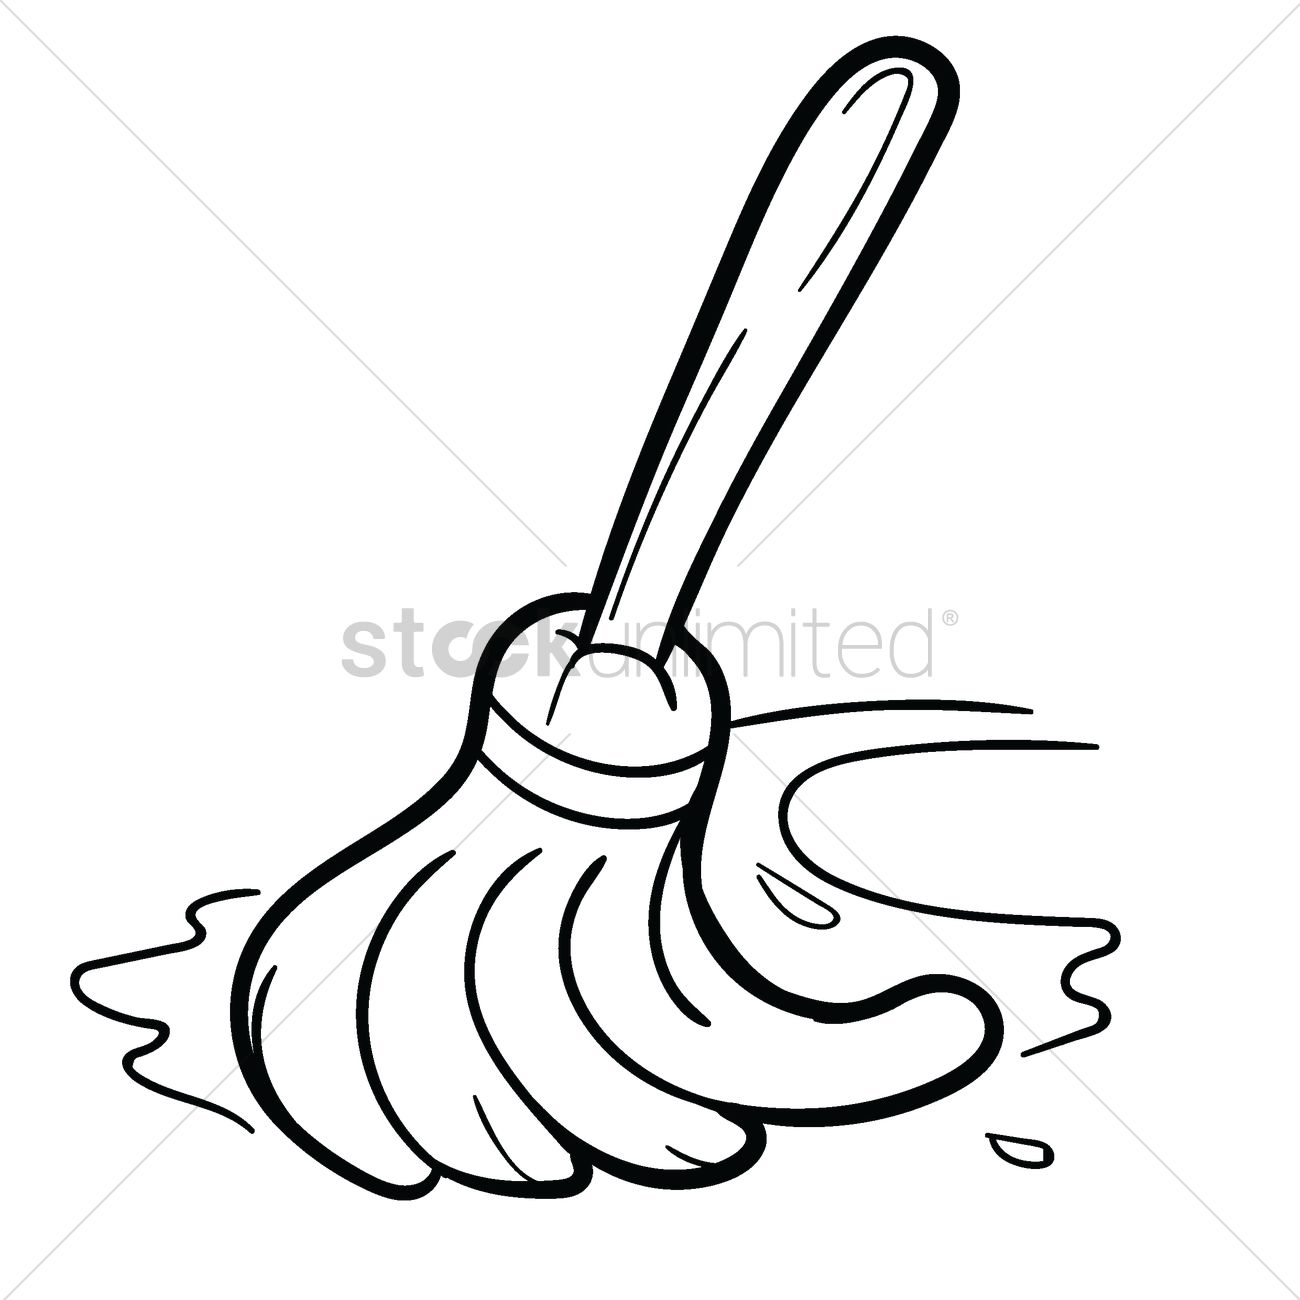 Cleaning Mop Vector Image